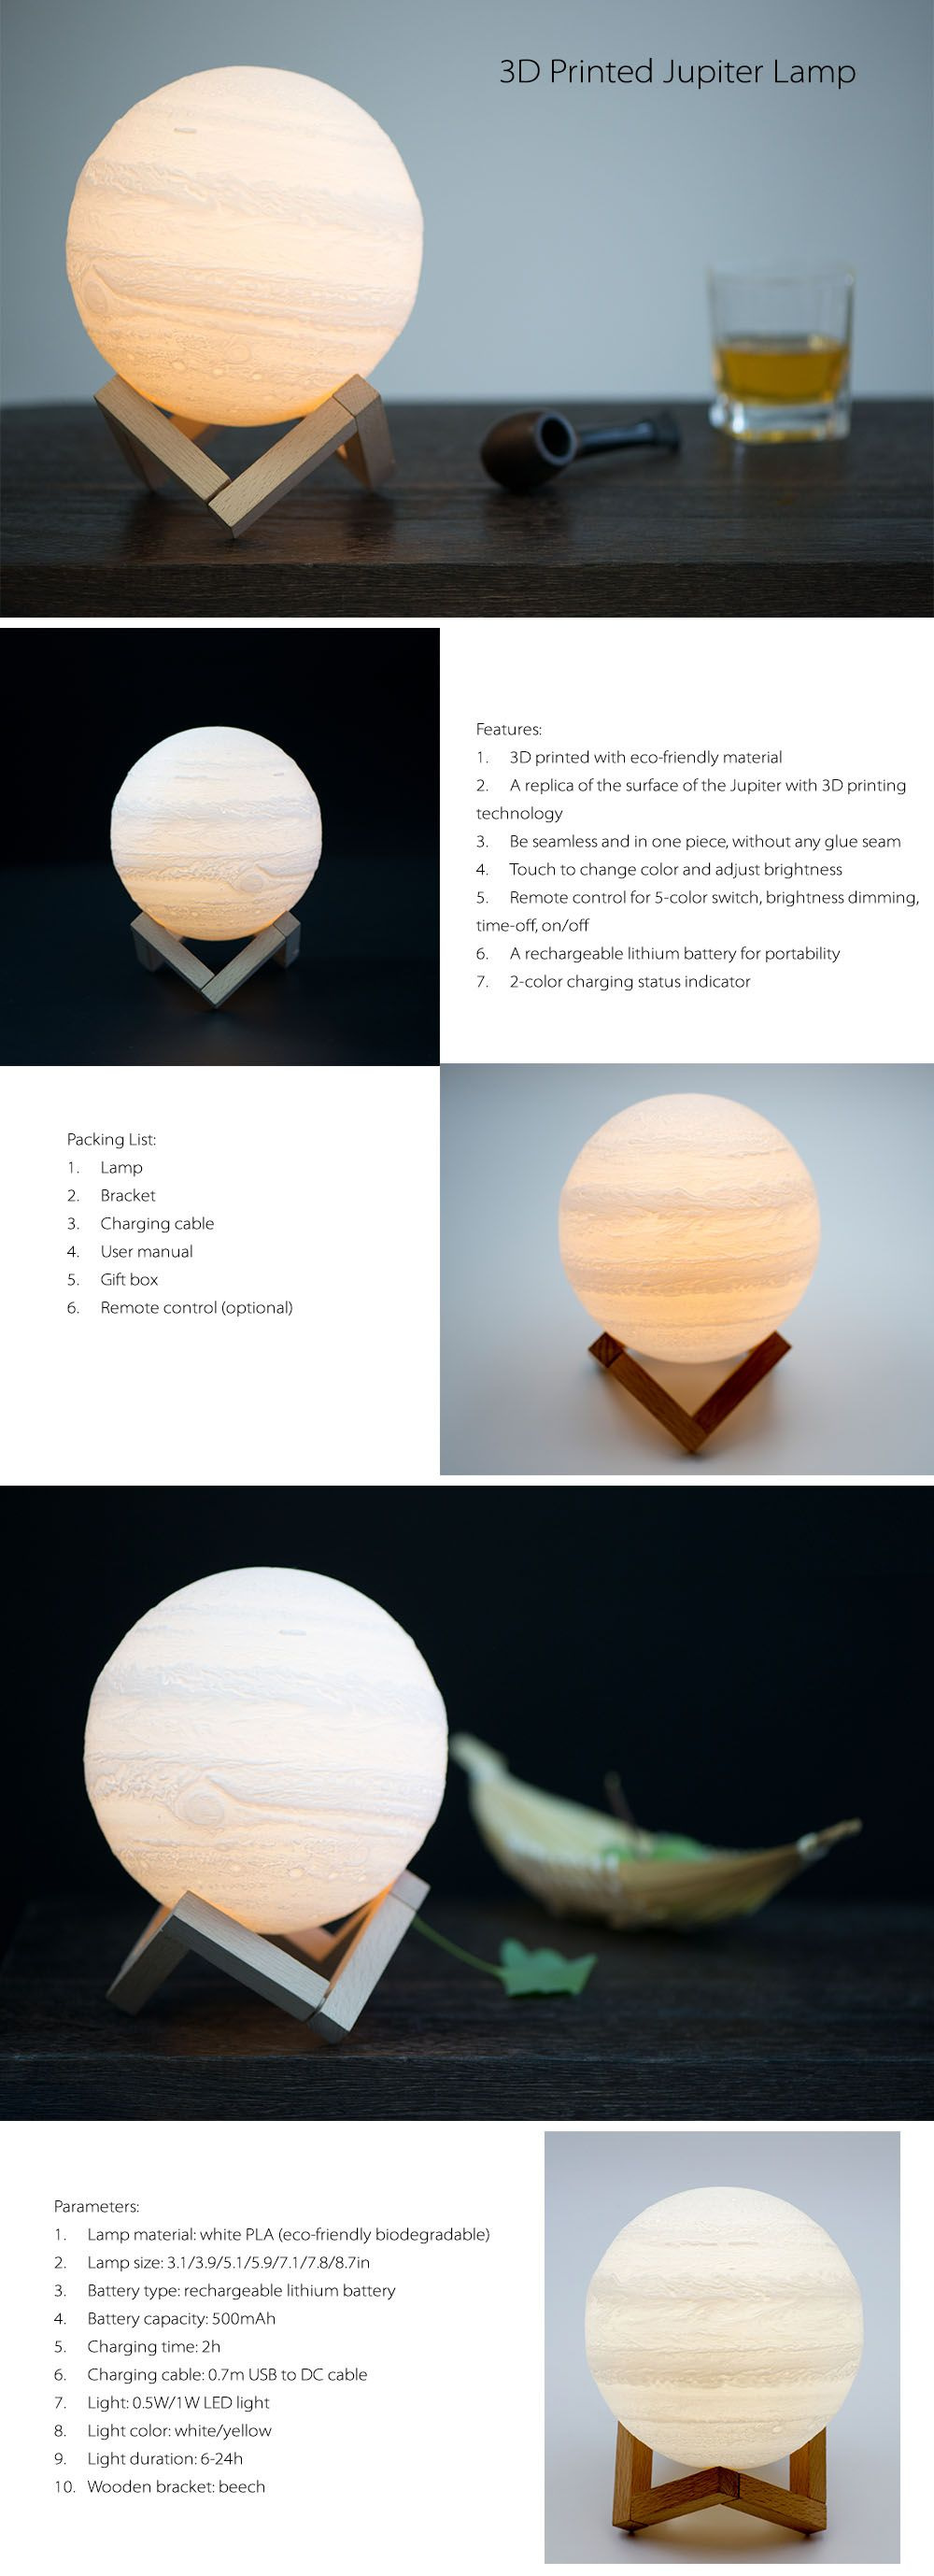 3D Printed Jupiter Lamp Hi-Tech Lamp